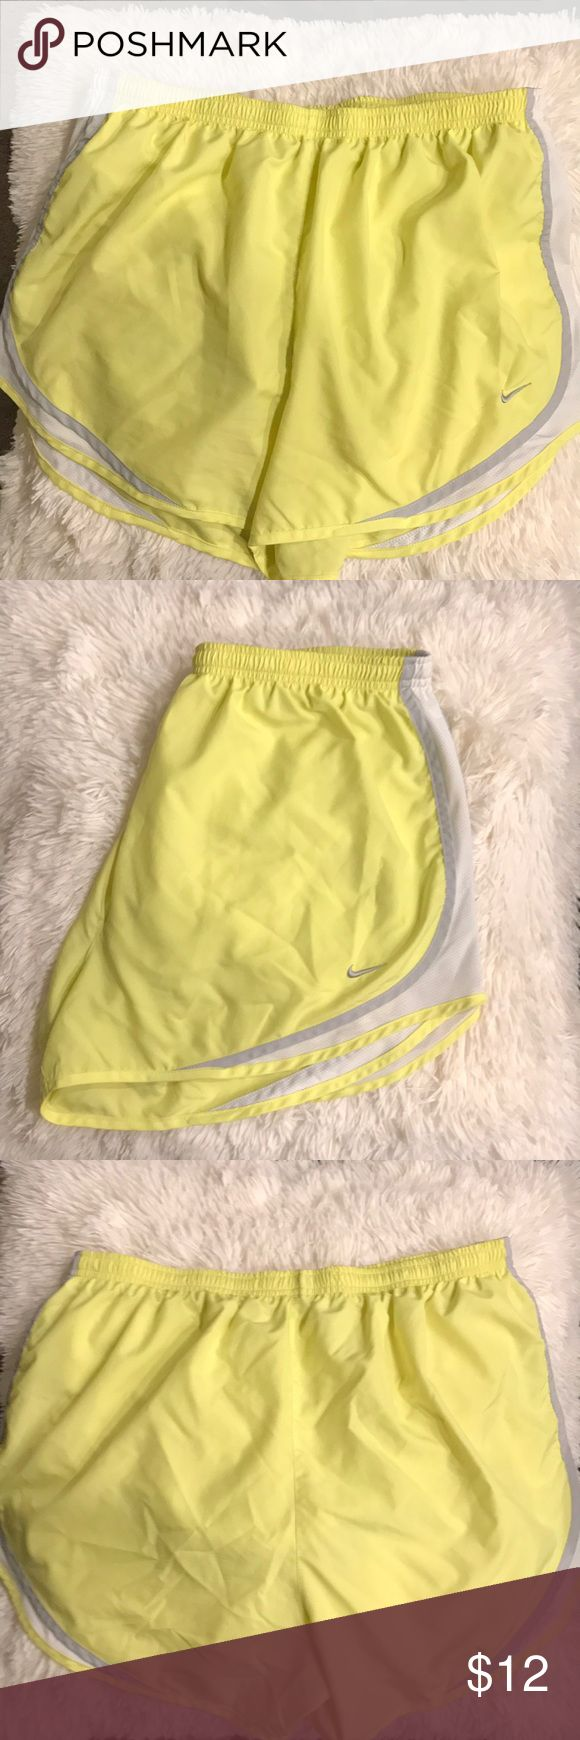 Nike Dri-Fit Running shorts XL Nike dri-fit yellow shorts. Super comfy running shorts. Worn less than five times. No visible stains, rips, or snags. Nike Shorts